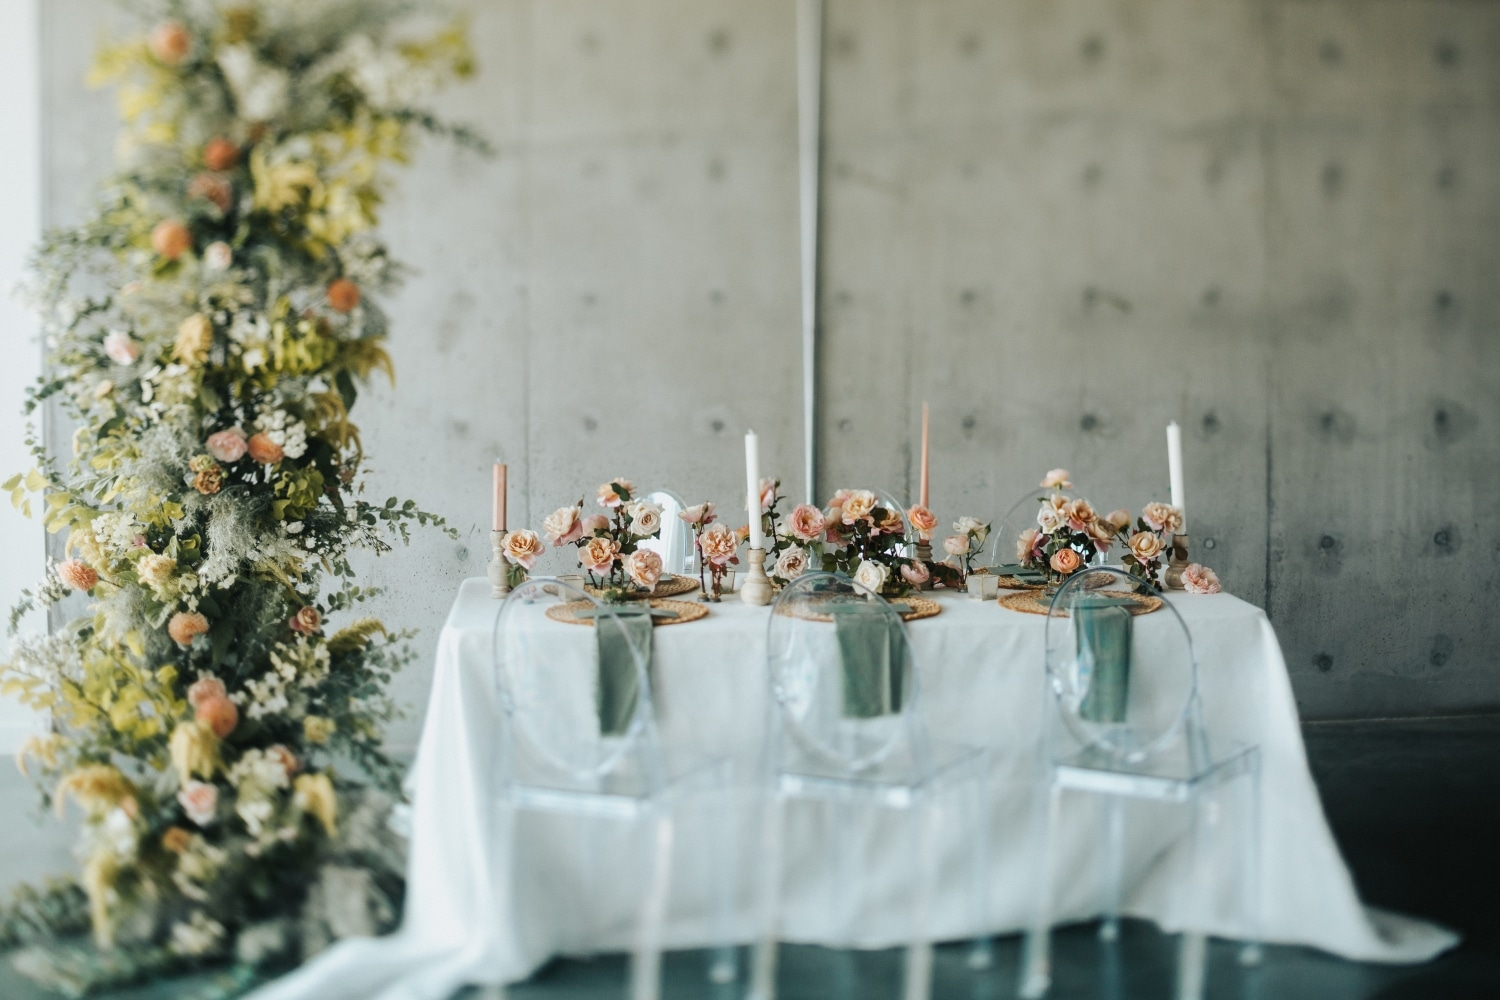 Jupiter hotel wedding with green table runner with florals